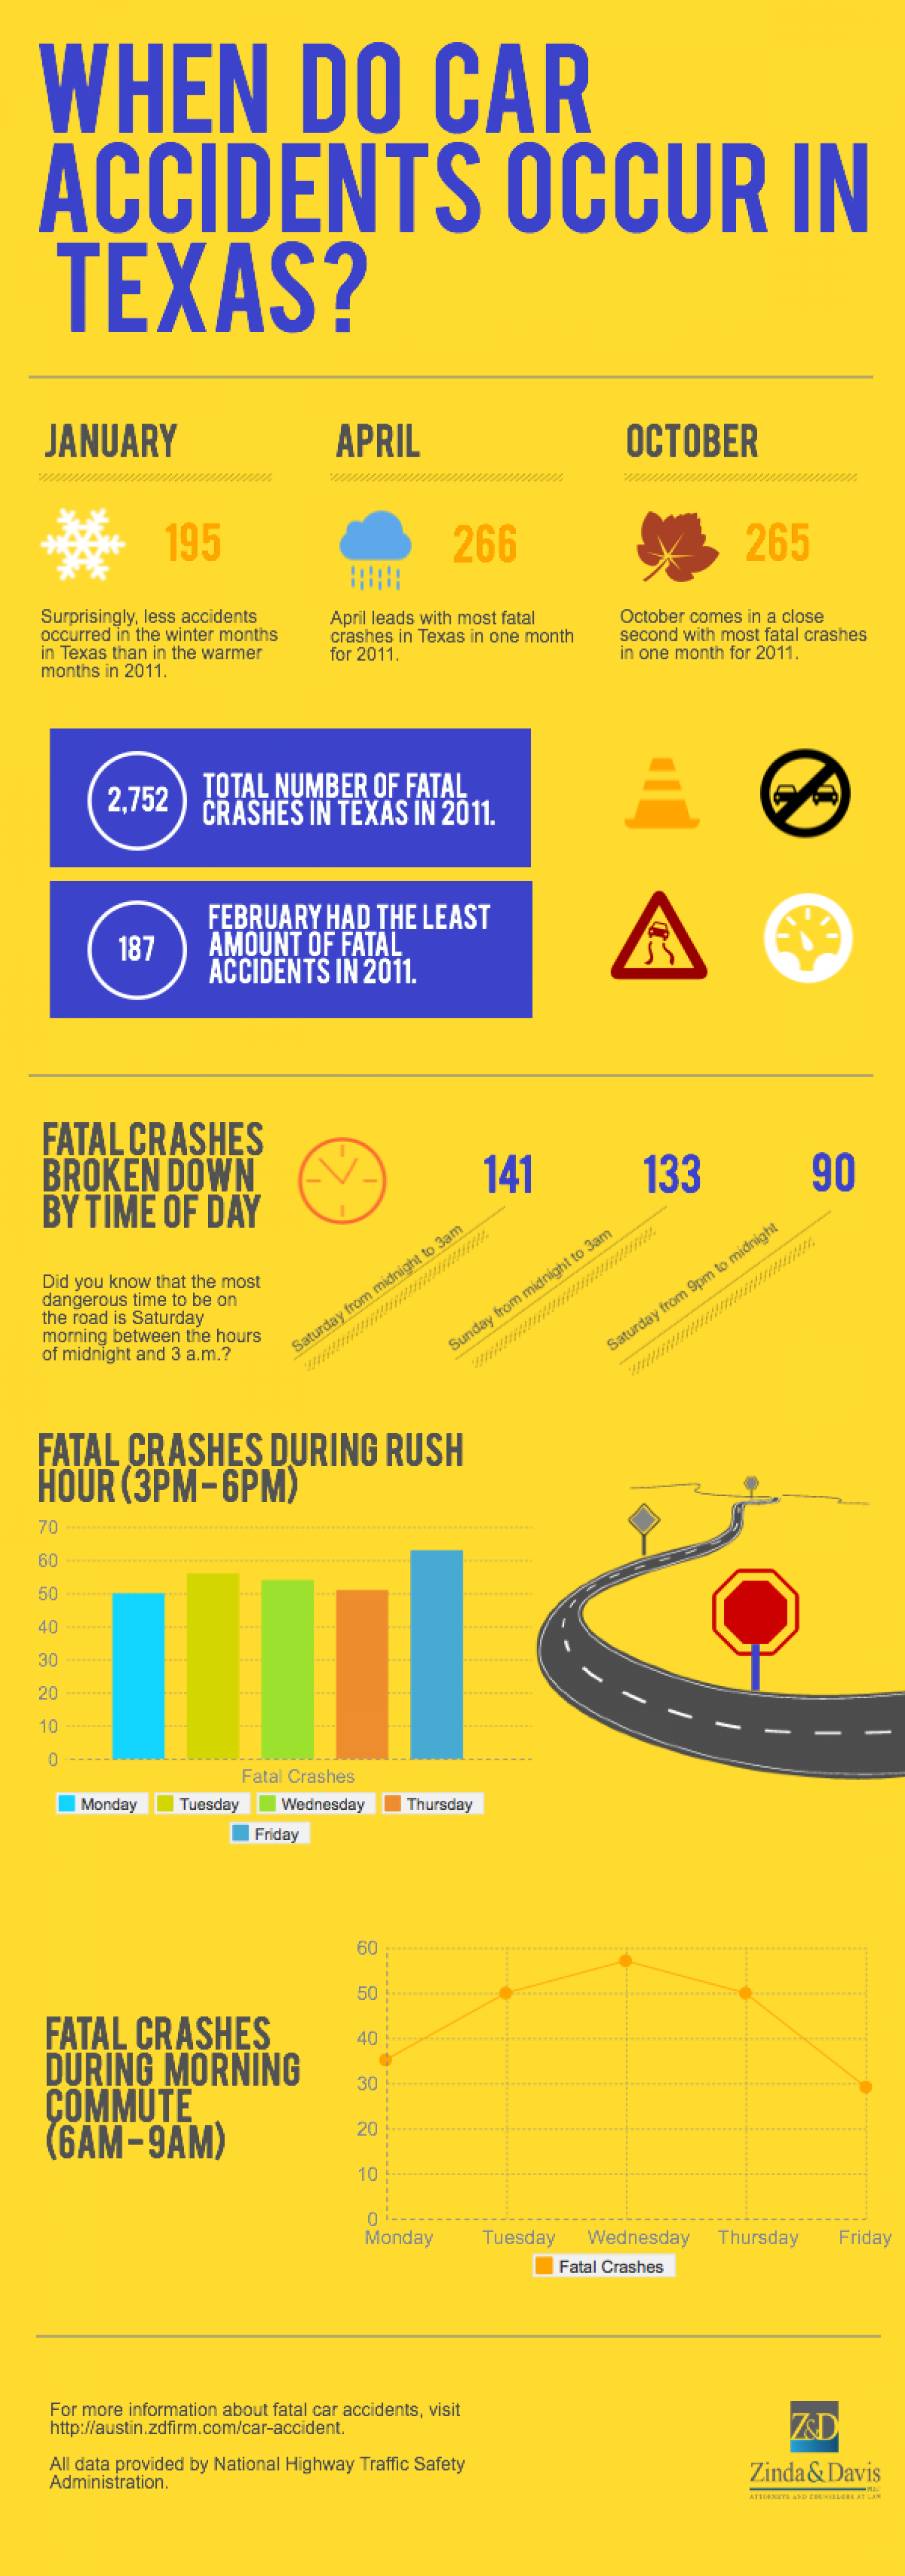 When Do Car Accidents Occur in Texas? Infographic